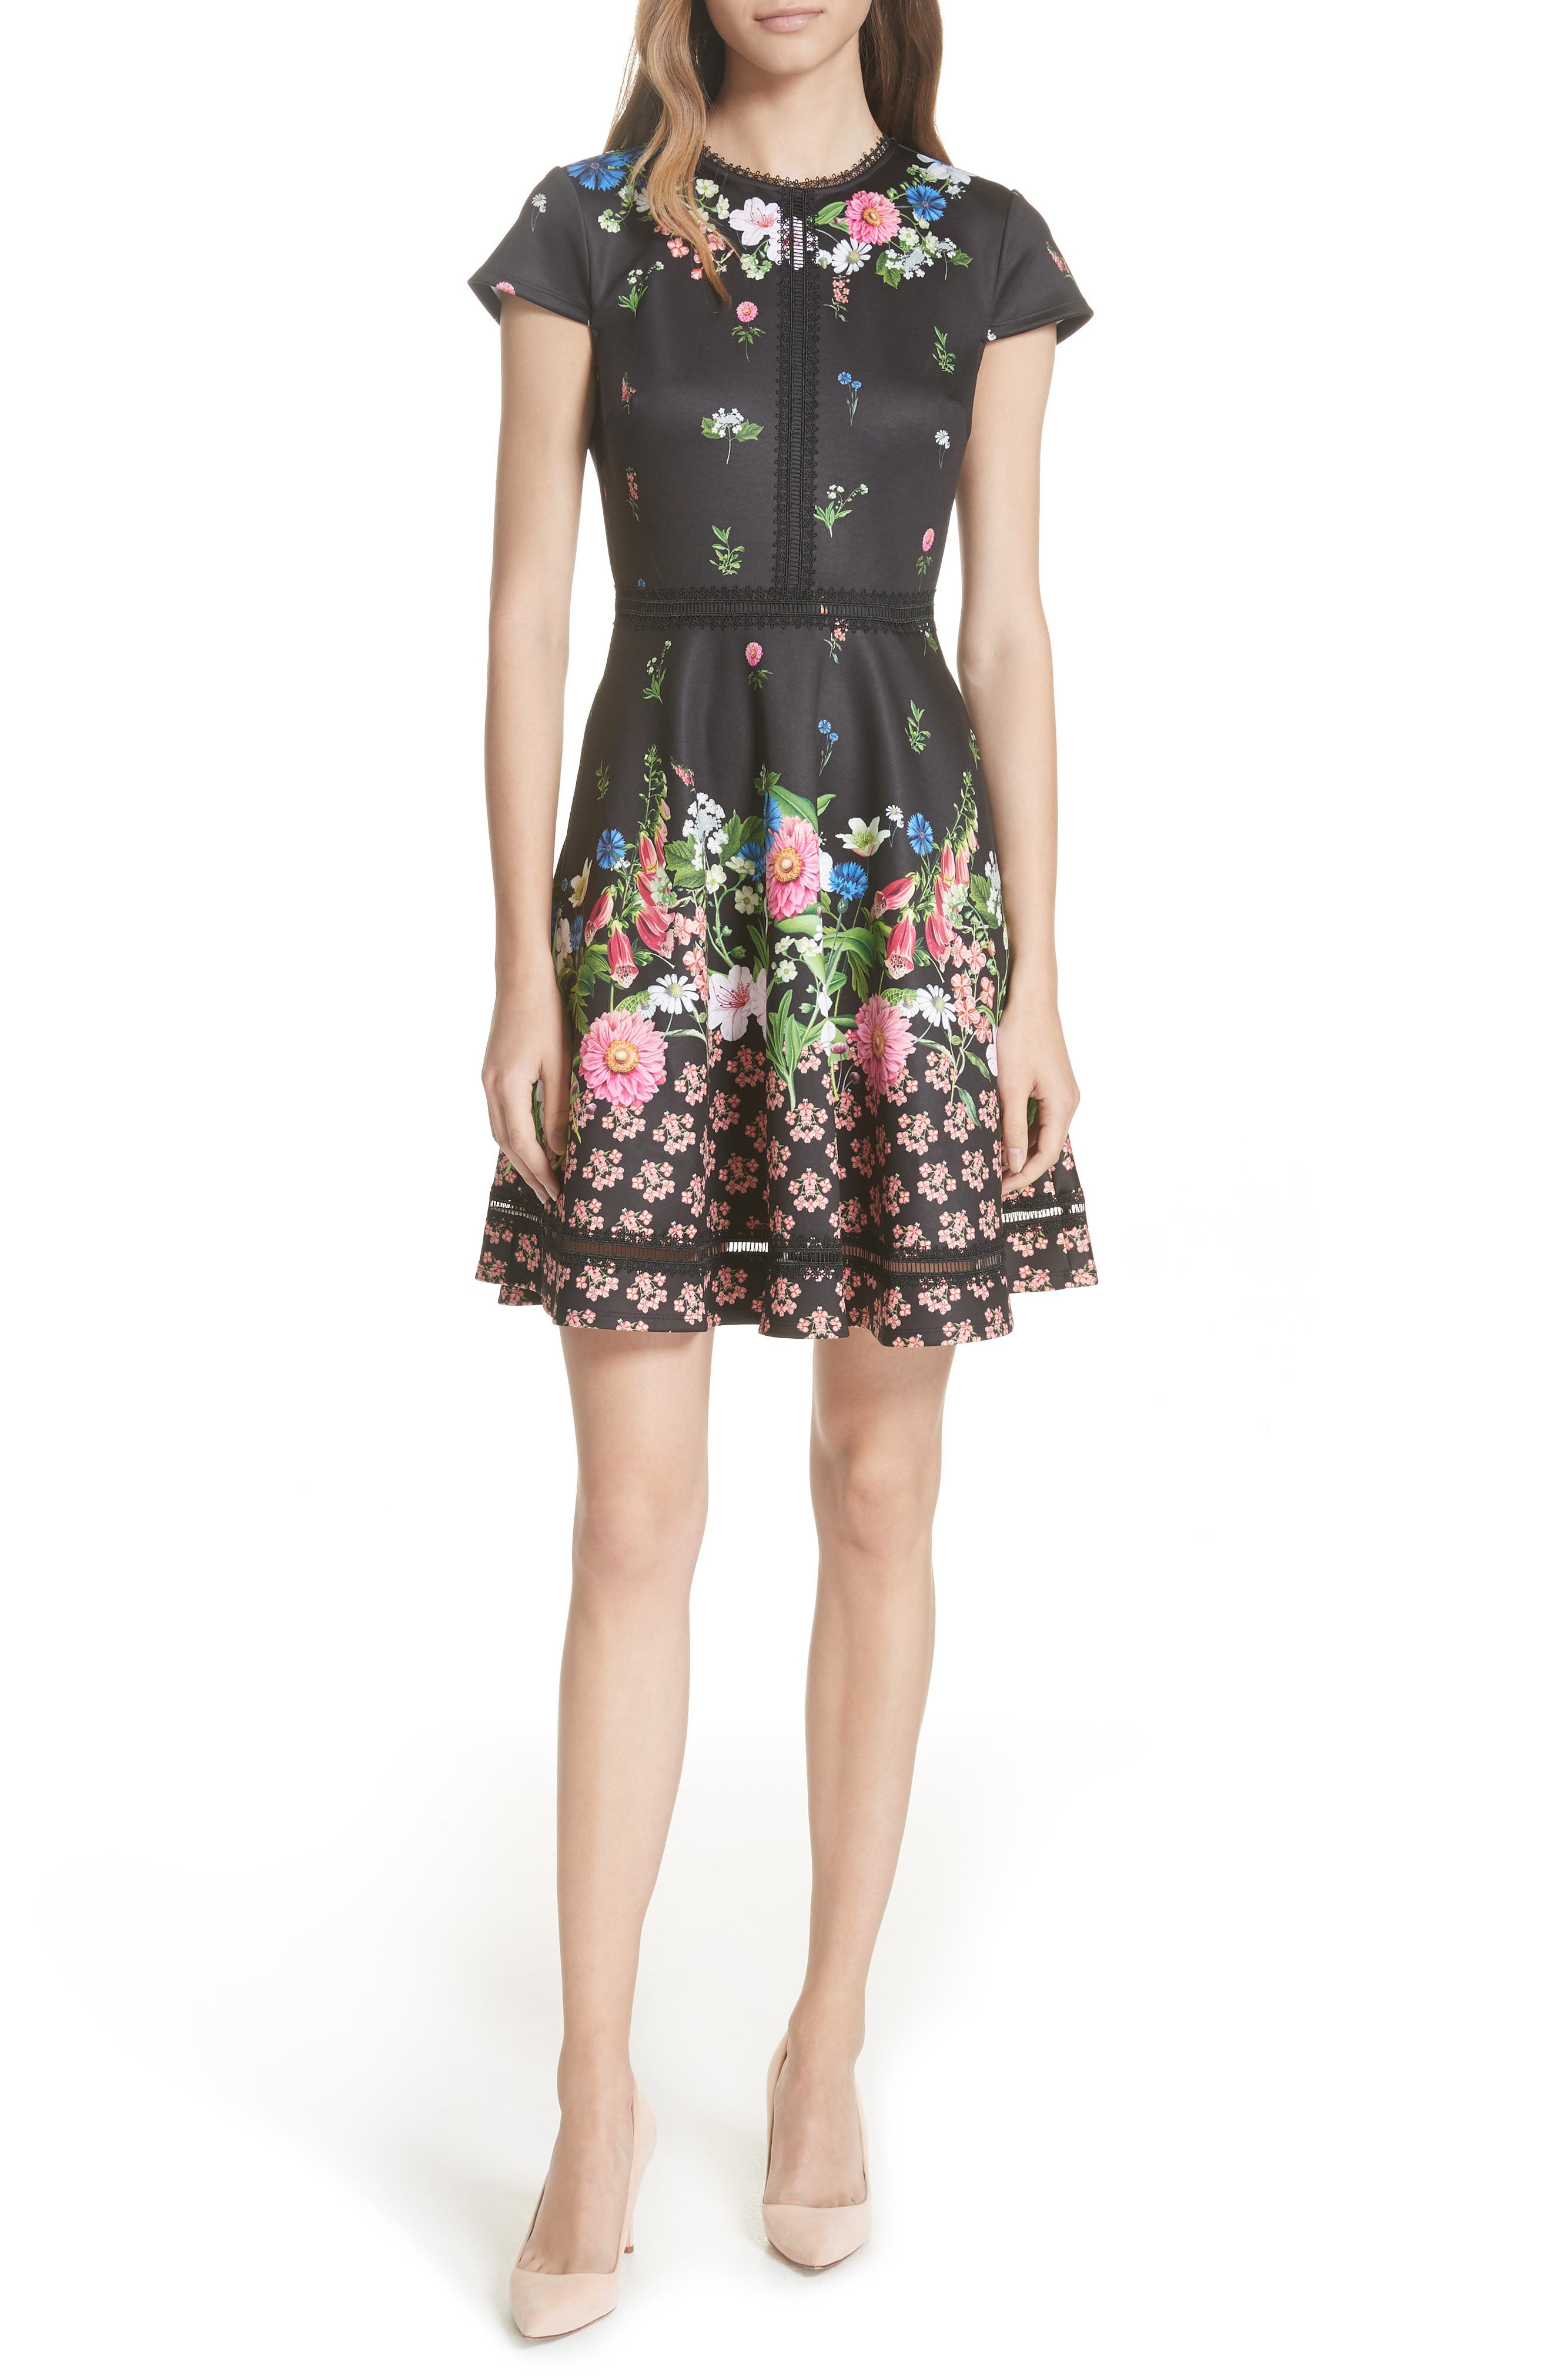 TED BAKER LONDON, Daissie Florence Trim Skater Dress, Main thumbnail 1, color, 001